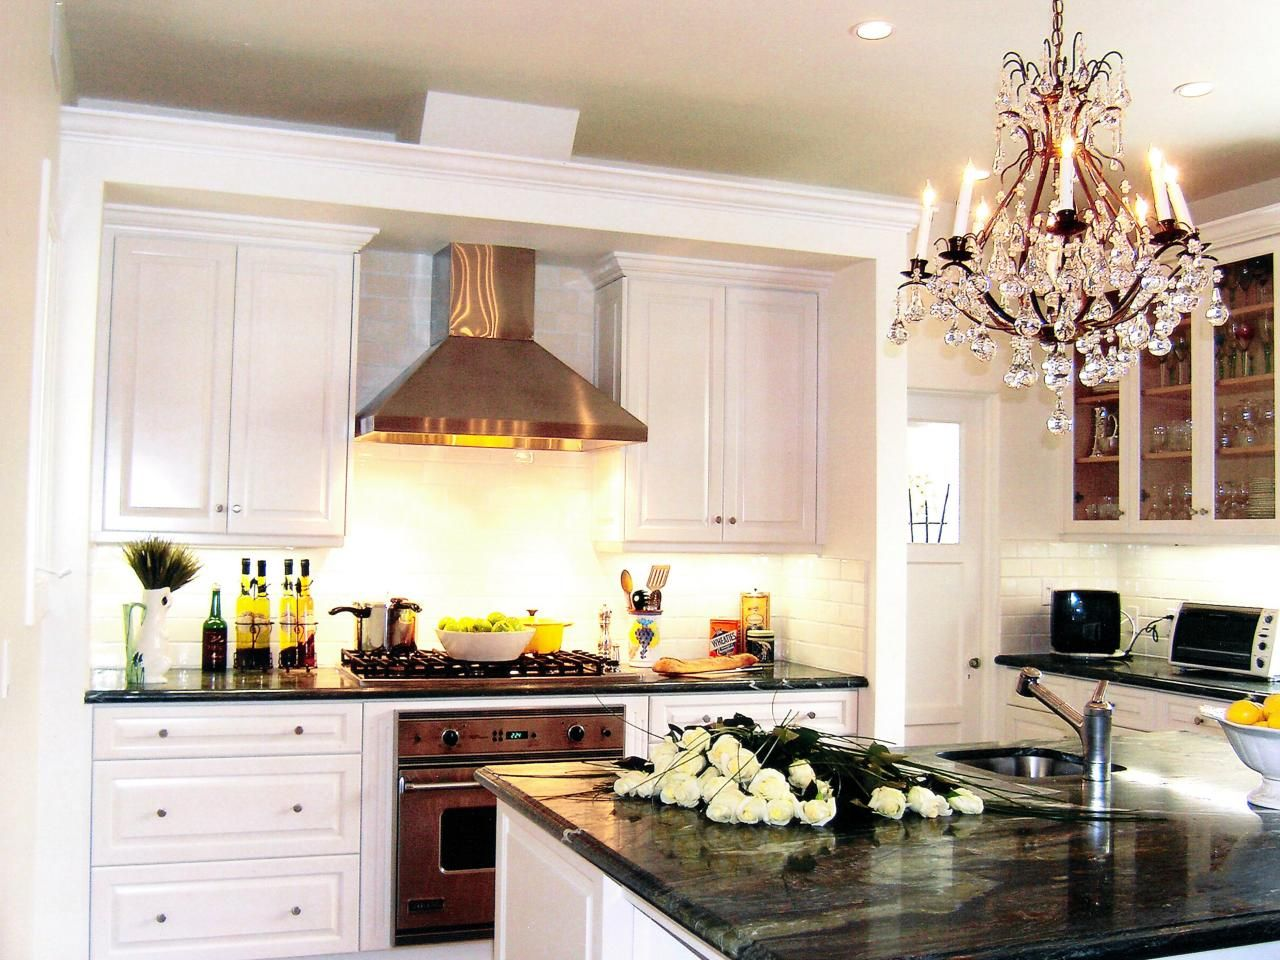 Timeless Style: White Kitchens | Hgtv, Kitchens and Hgtv magazine